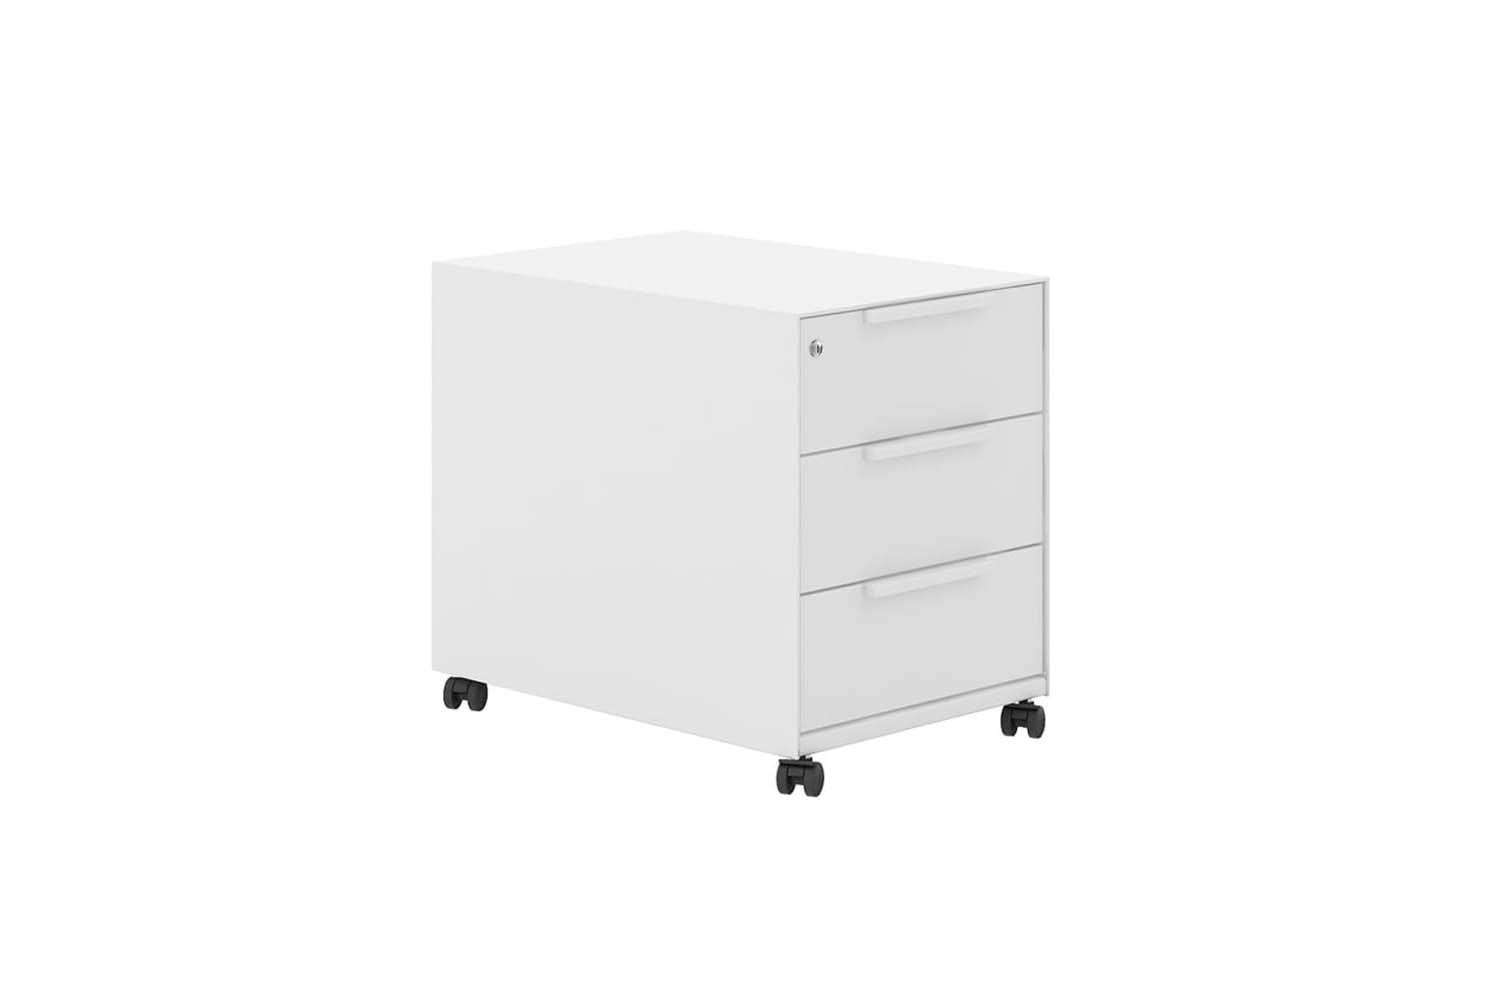 10 Easy Pieces Modern Metal File Cabinets On Wheels The